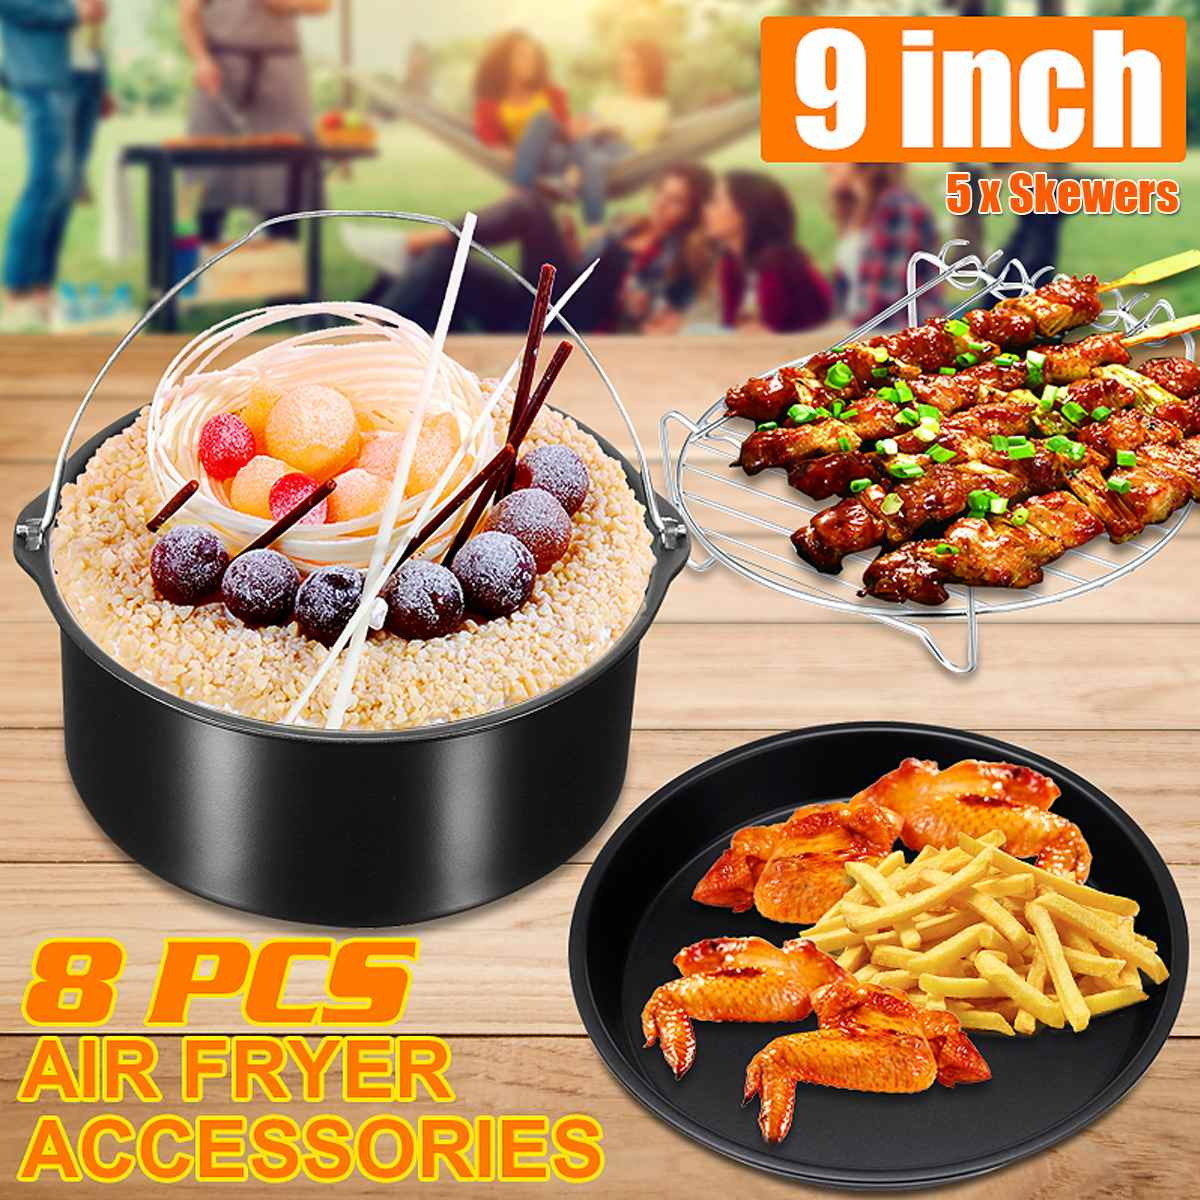 8pcs Air Fryer Accessories 9 Inch Fit For Airfryer 5.2-6.8QT Baking Basket Pizza Plate Grill Pot Kitchen Cooking Tool For Party